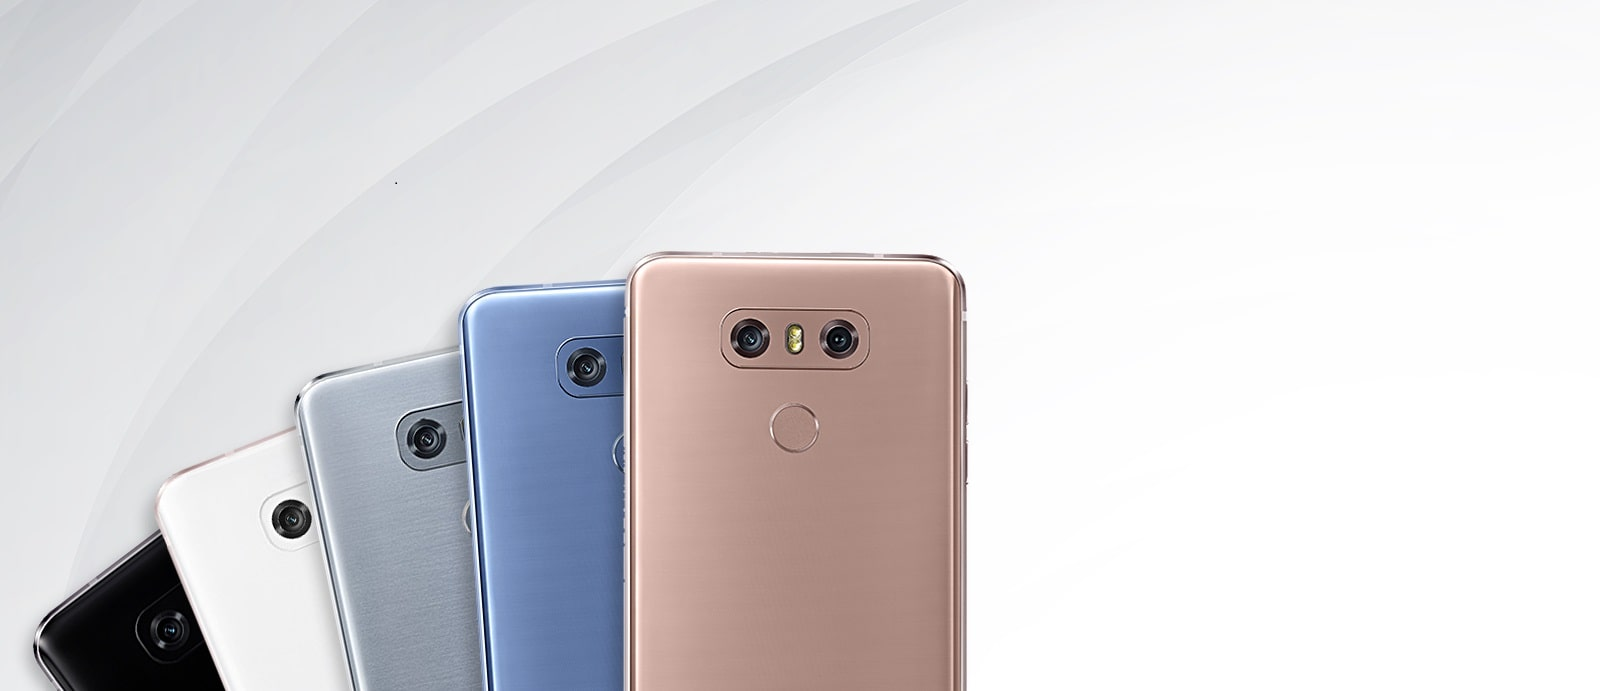 to wear - Stylish essentially and smart lg-t385 video